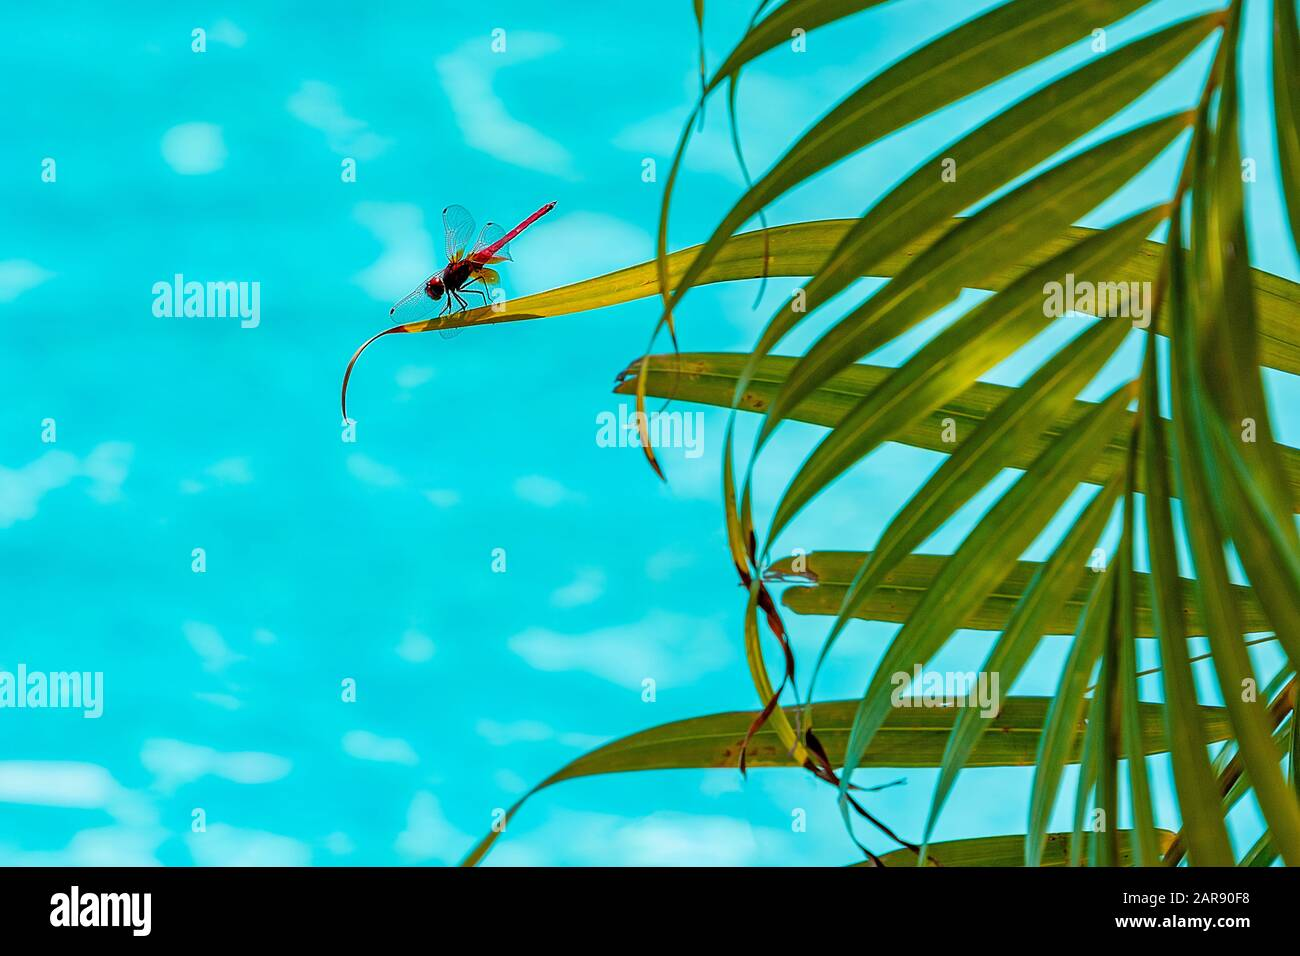 Udewalewe, Sri Lanka, Aug 2015:  Red dragonfly perched on a leaf overlooking blue water Stock Photo